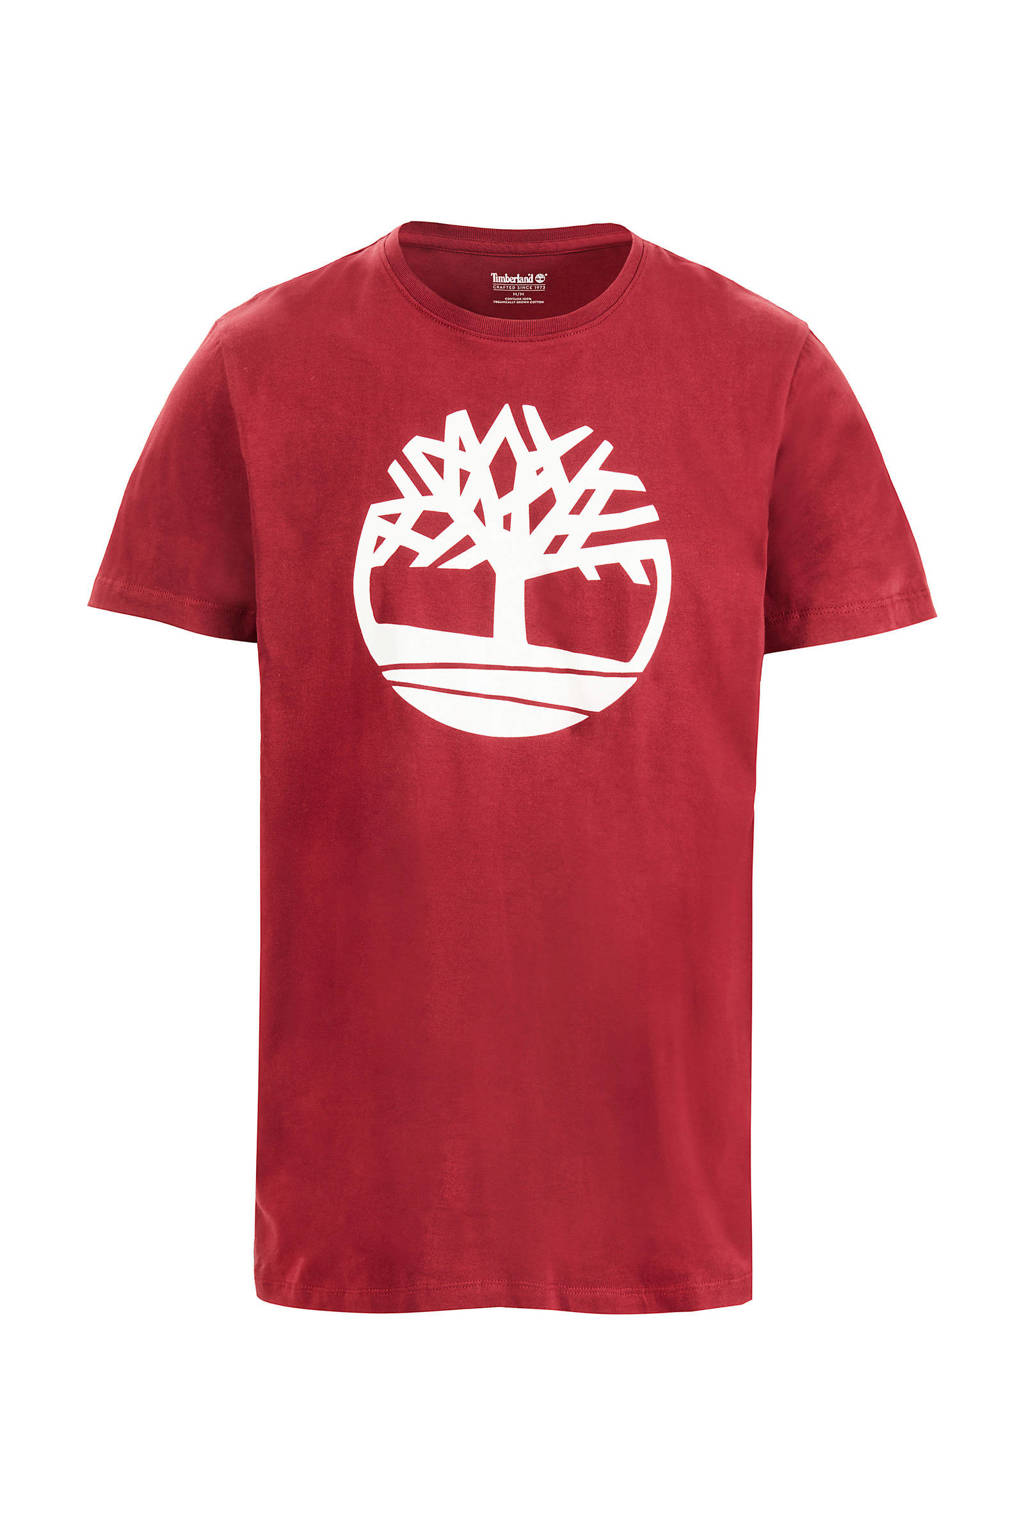 Timberland T-shirt met print rood, Rood/wit